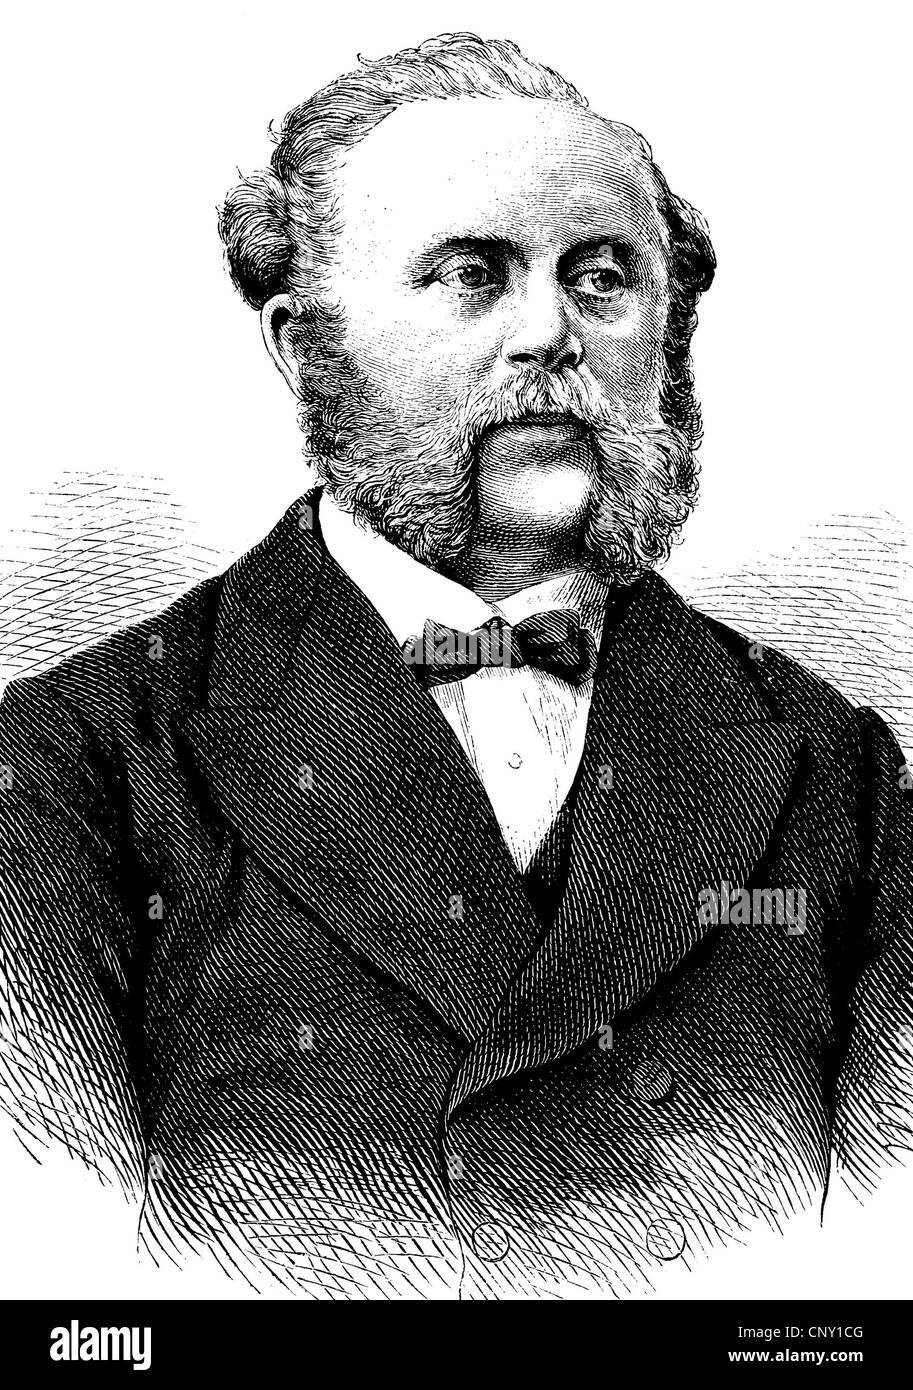 Wilhelm Julius Foerster, 1832 - 1921, a German astronomer, historical engraving, about 1889 - Stock Image